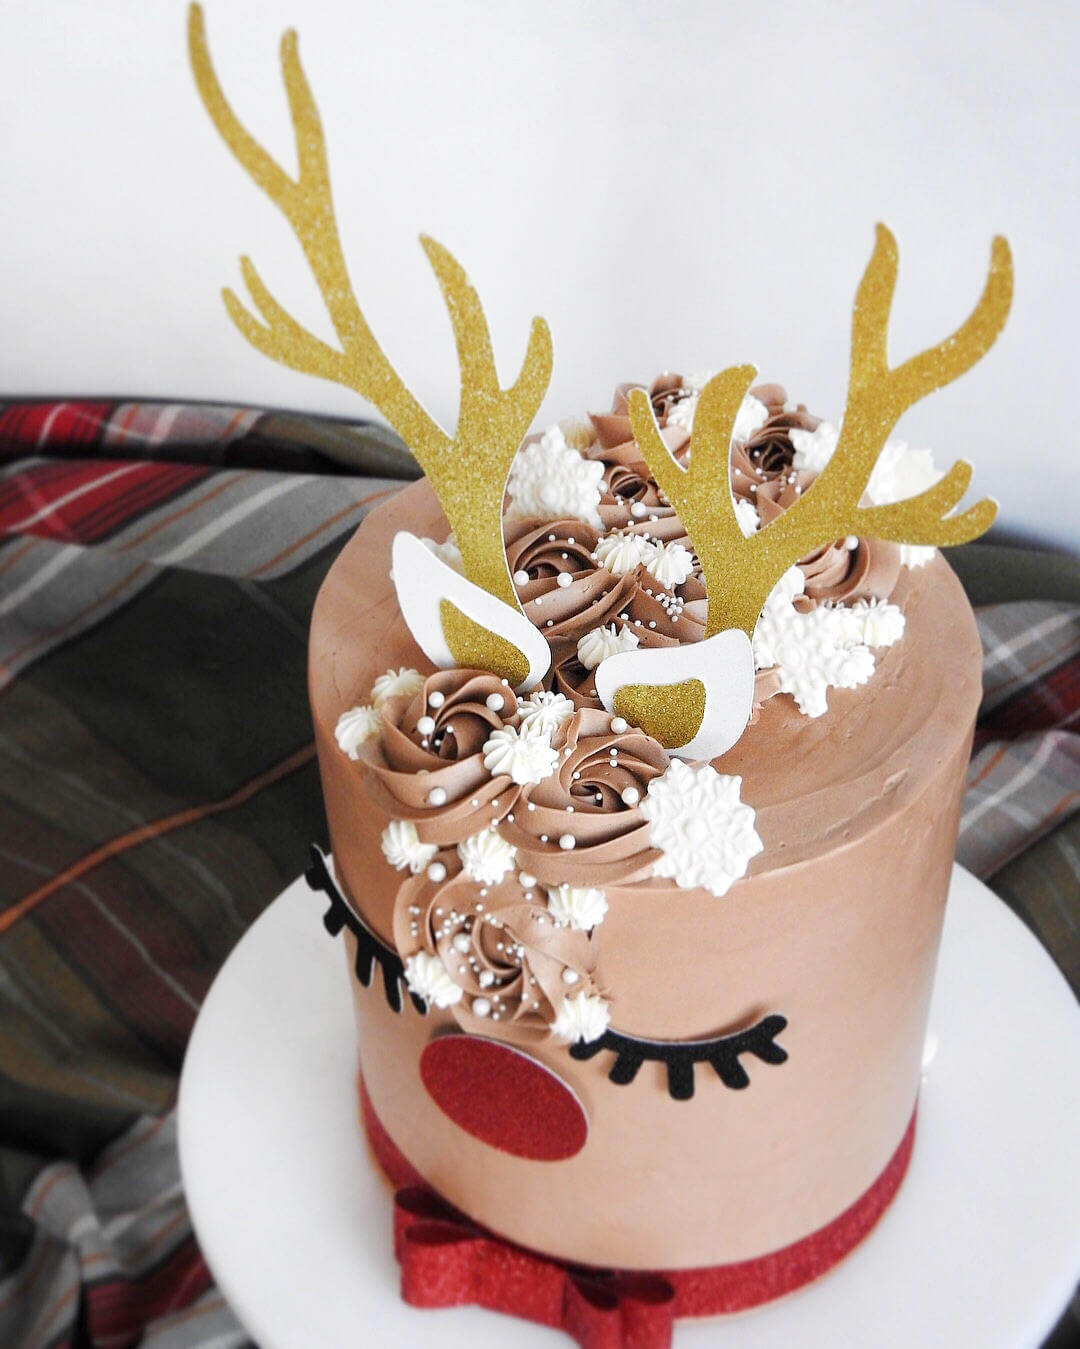 Adorable Reindeer Cake Topper for Holiday Parties